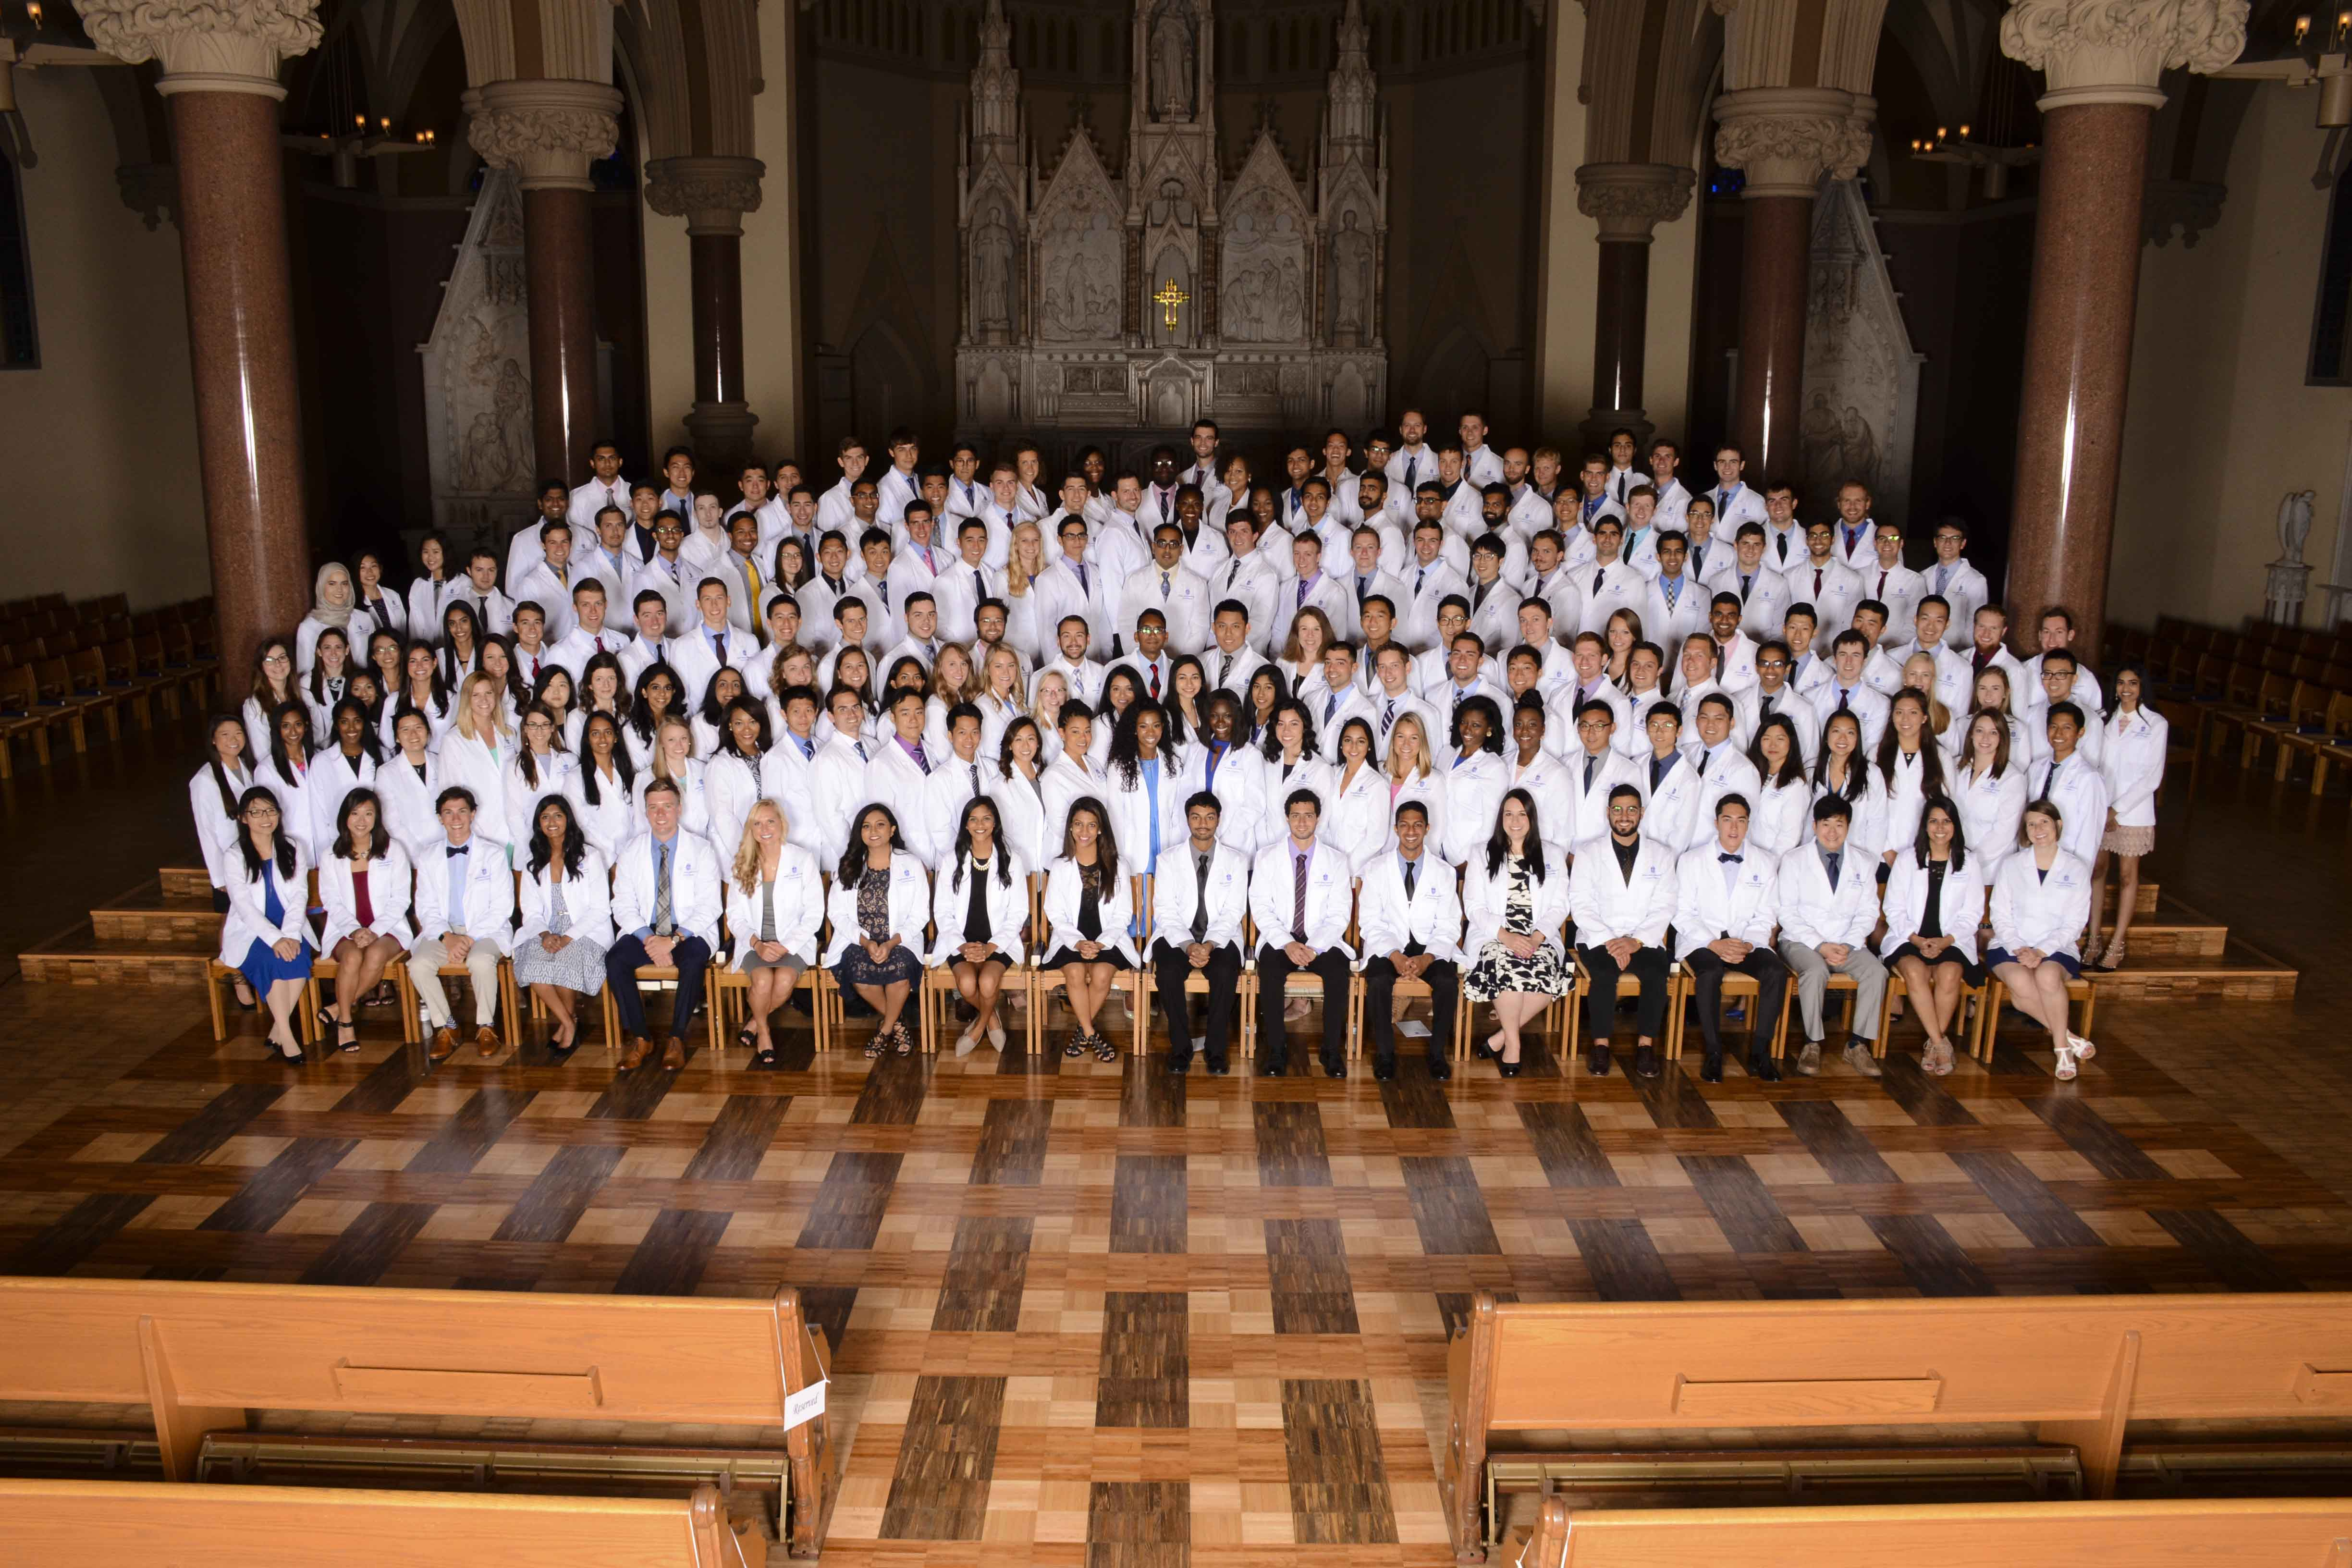 Saint Louis University School of Medicine Class of 2021.